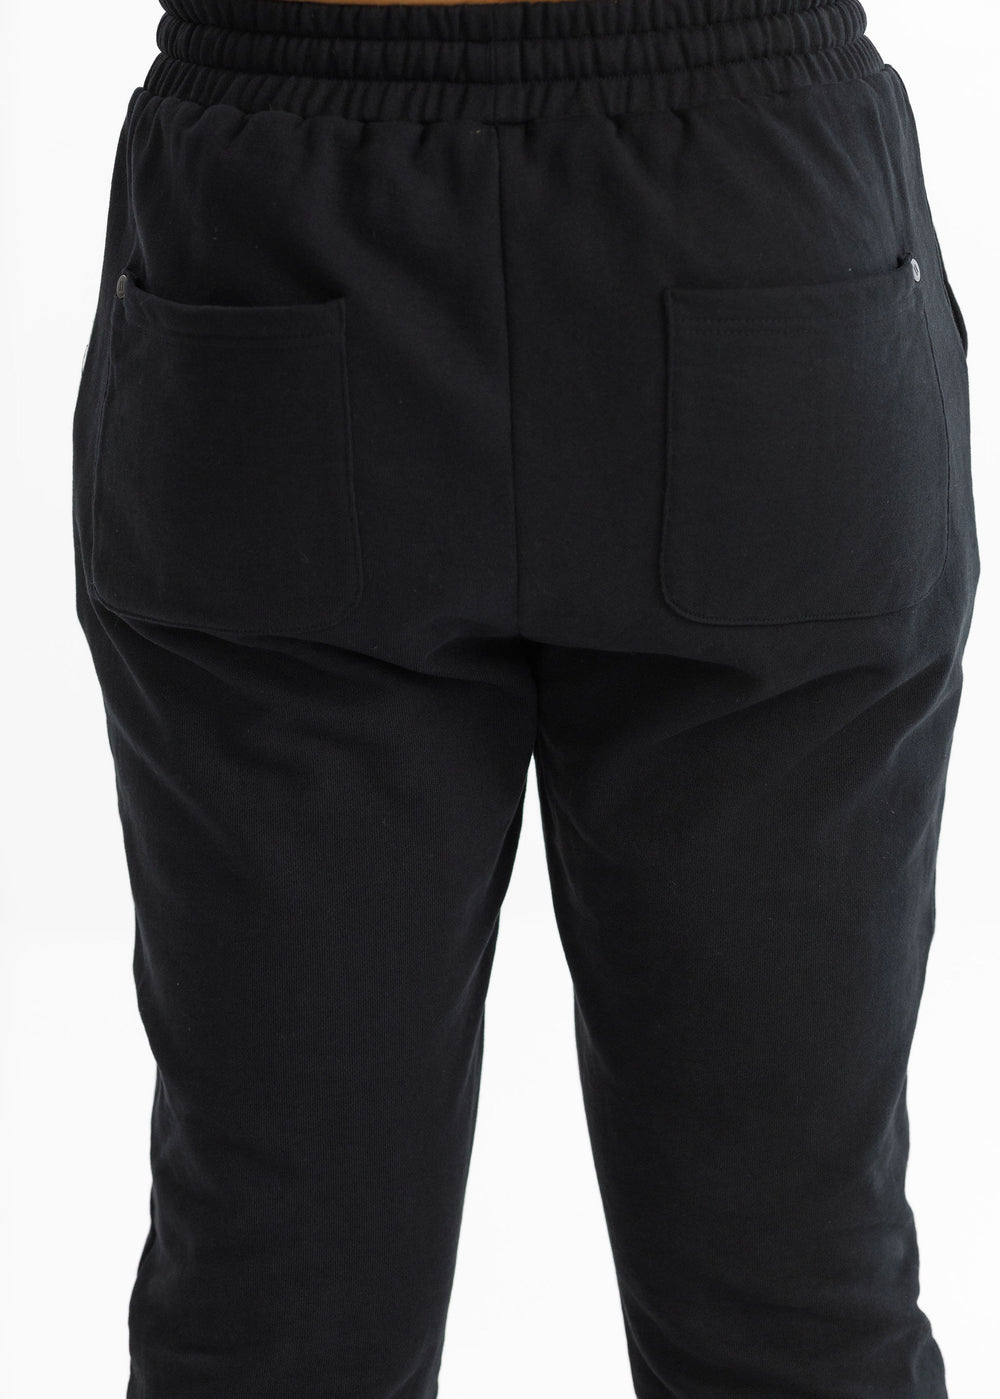 NIGHT TRACKIE - Black